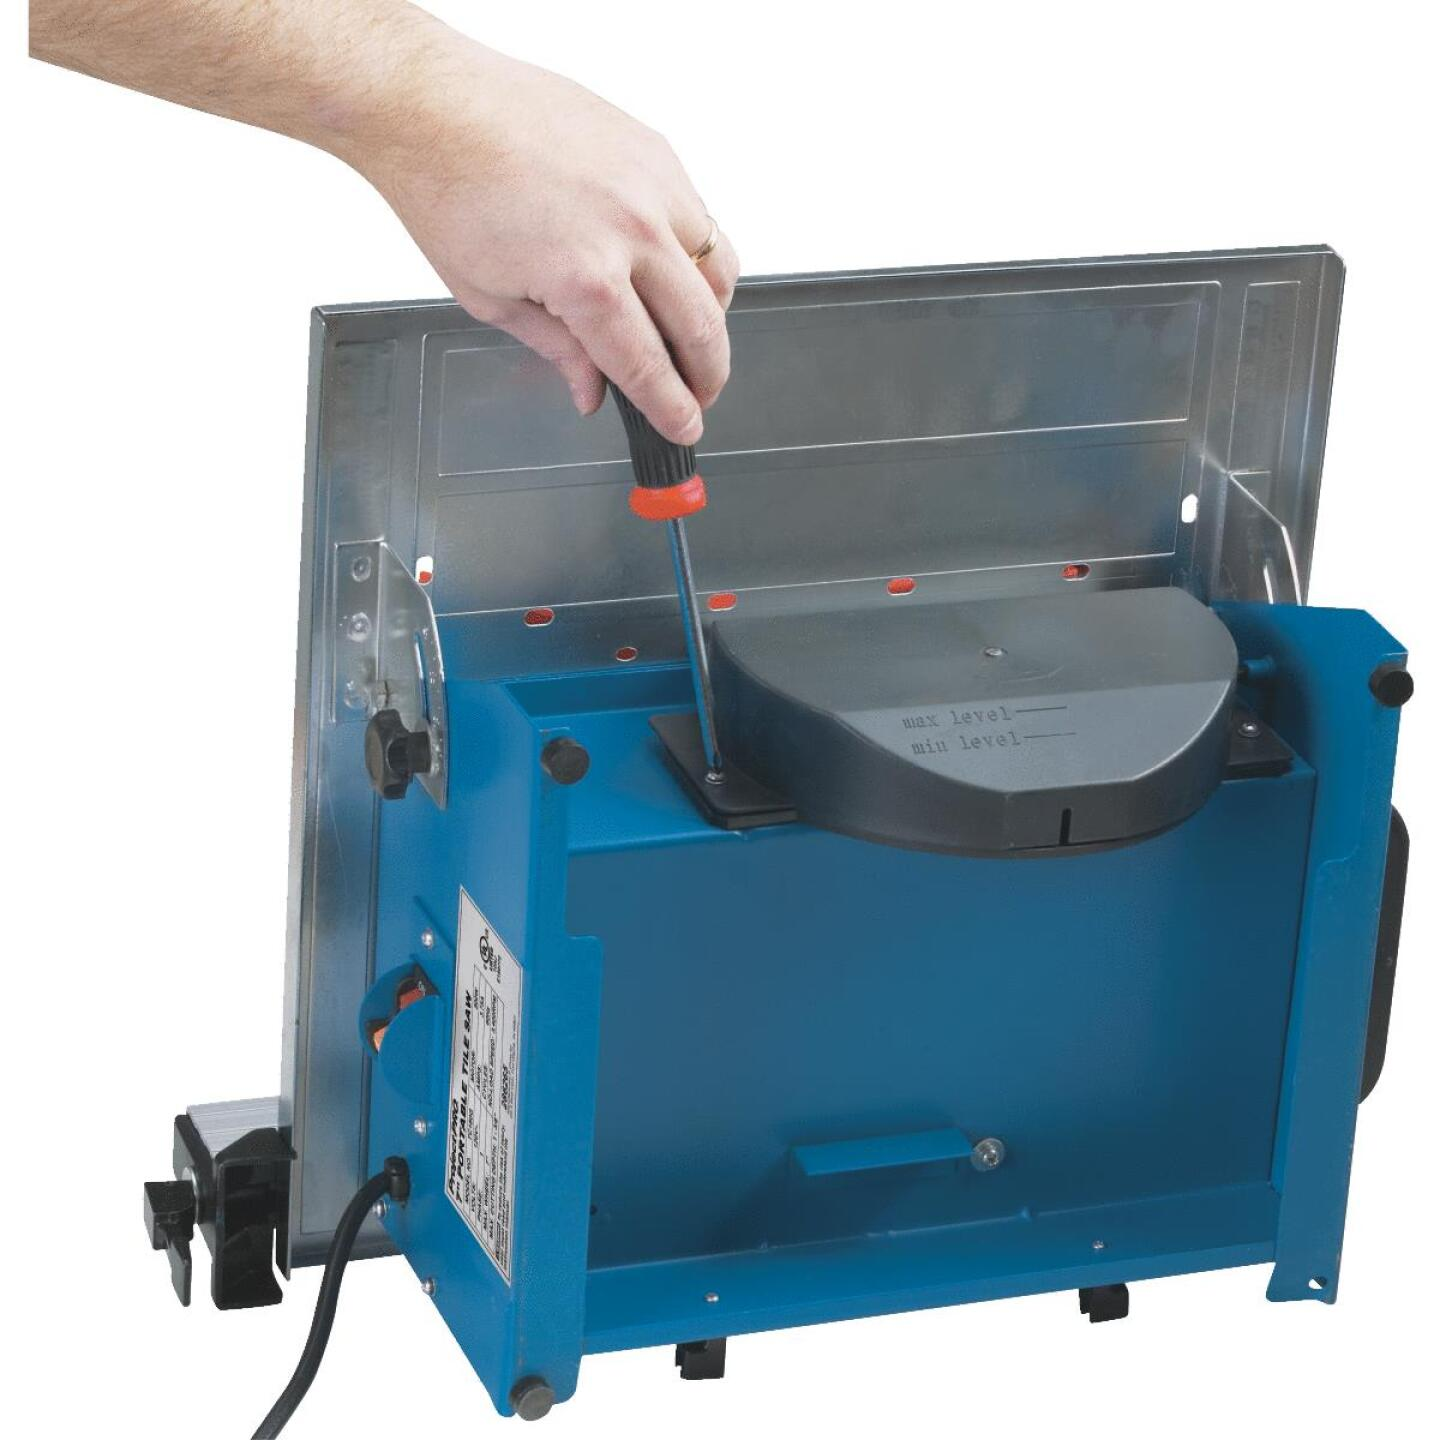 Project Pro 7 In. Portable Tile Saw Image 7